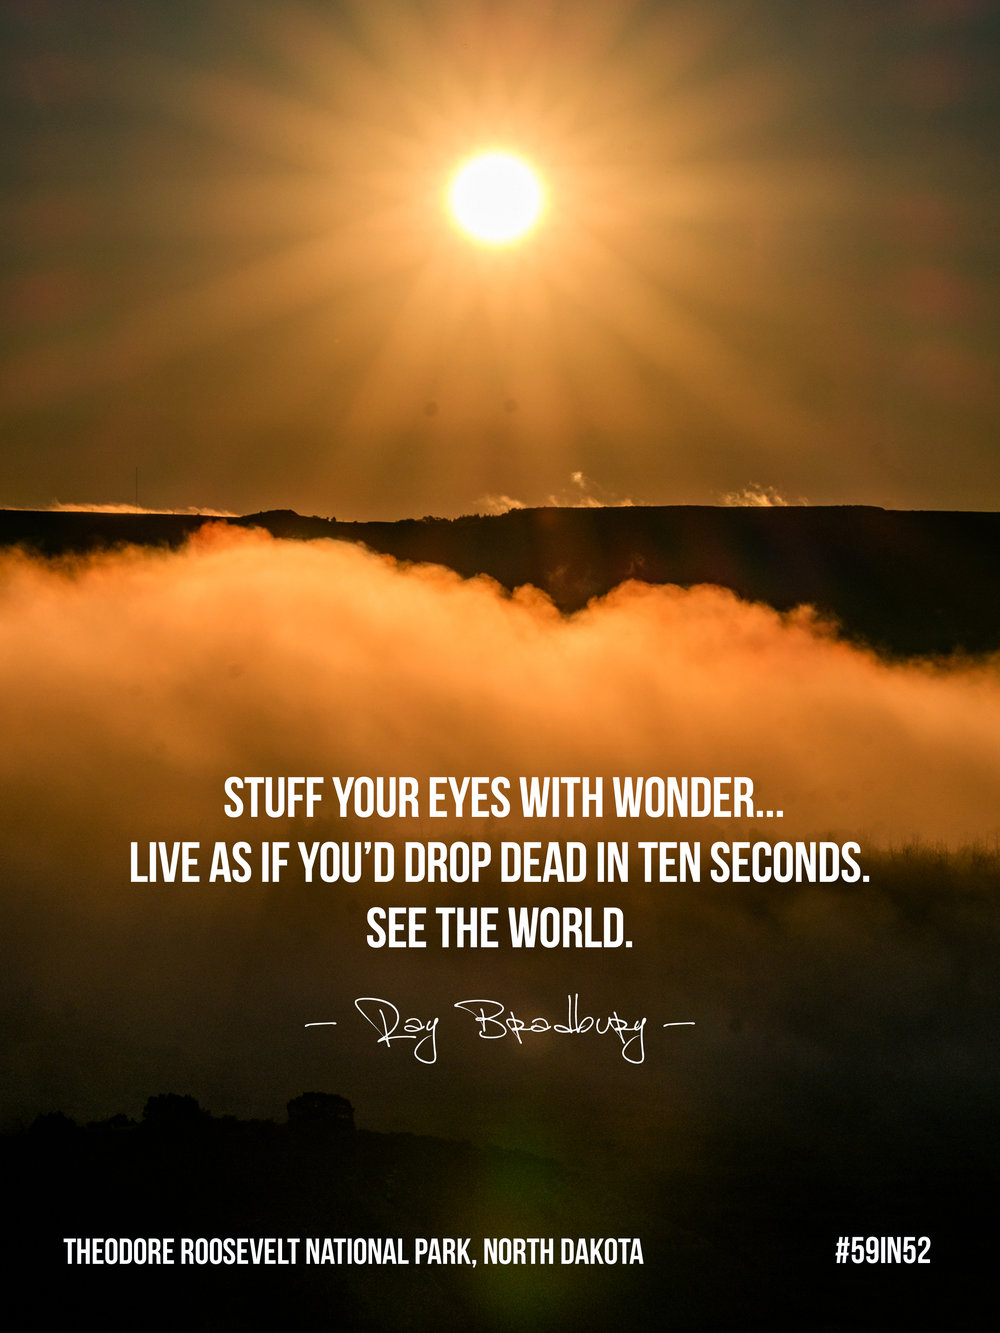 """Stuff your eyes with wonder... live as if you'd drop dead in ten seconds. See the world."" - Ray Bradbury"